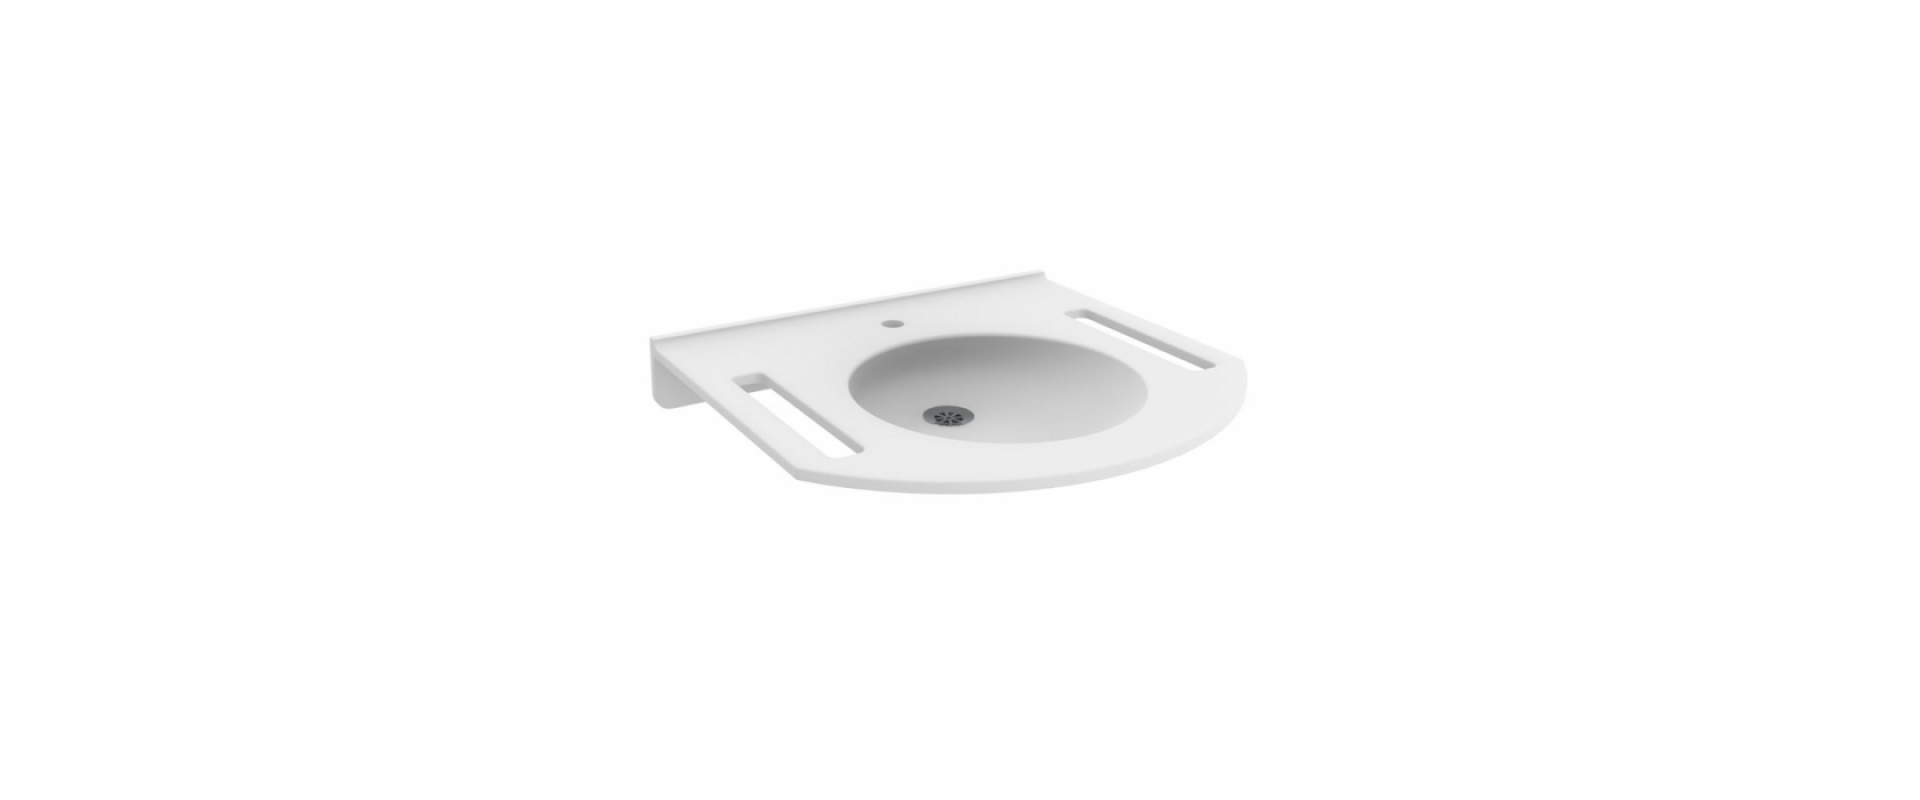 Accessible Washbasins